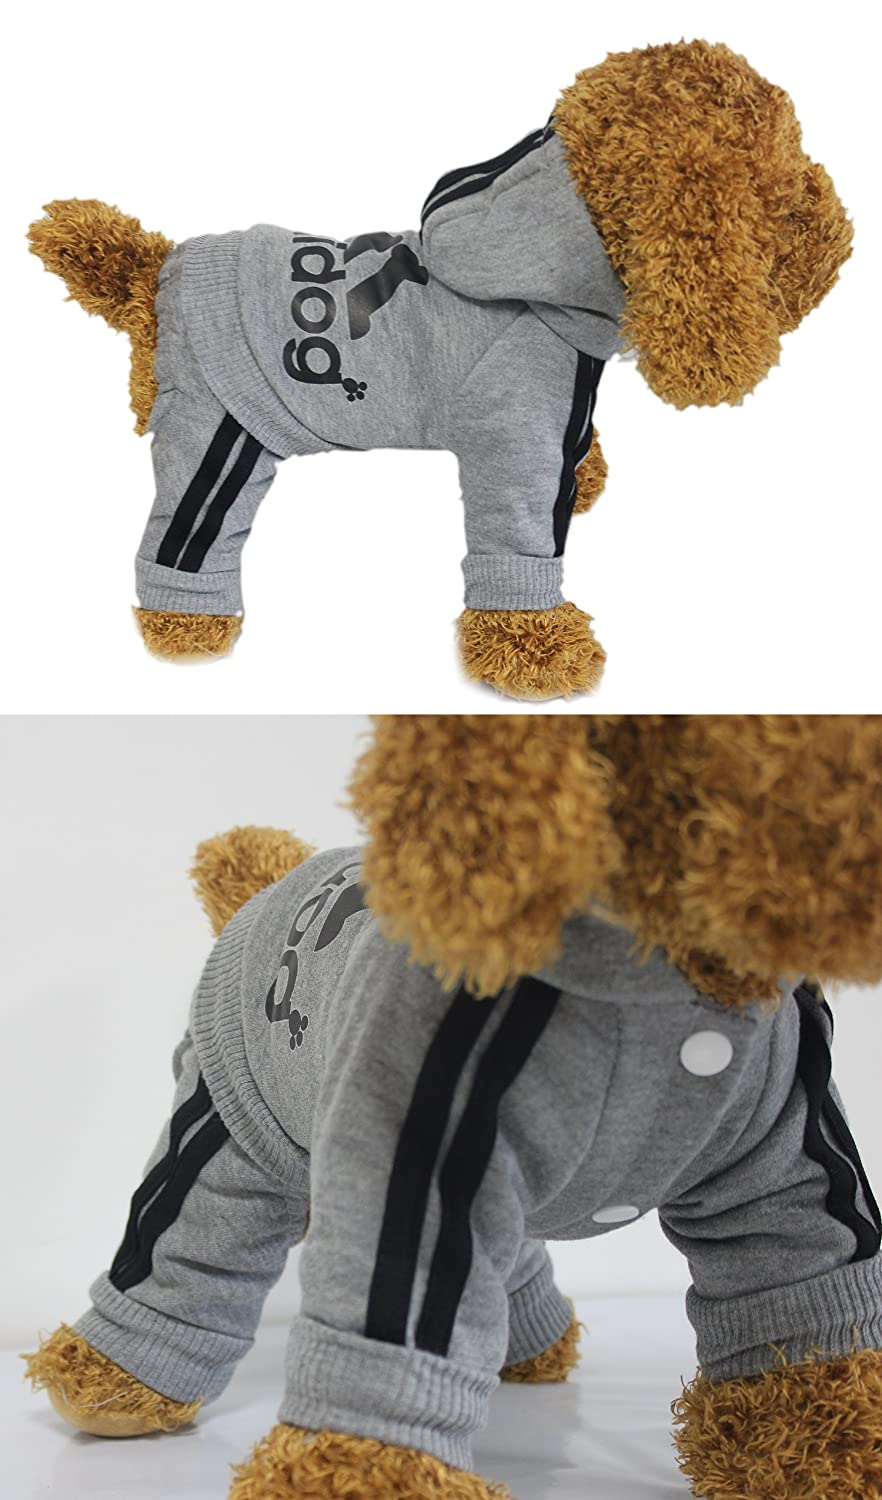 Scheppend Super Cute Adidog Sport Coats Pet Clothes Hoodie for Small Medium Large Dogs Cotton Sweater Winter Puppy Cat Outfits Soft T Shirt Warm Sweatshirt